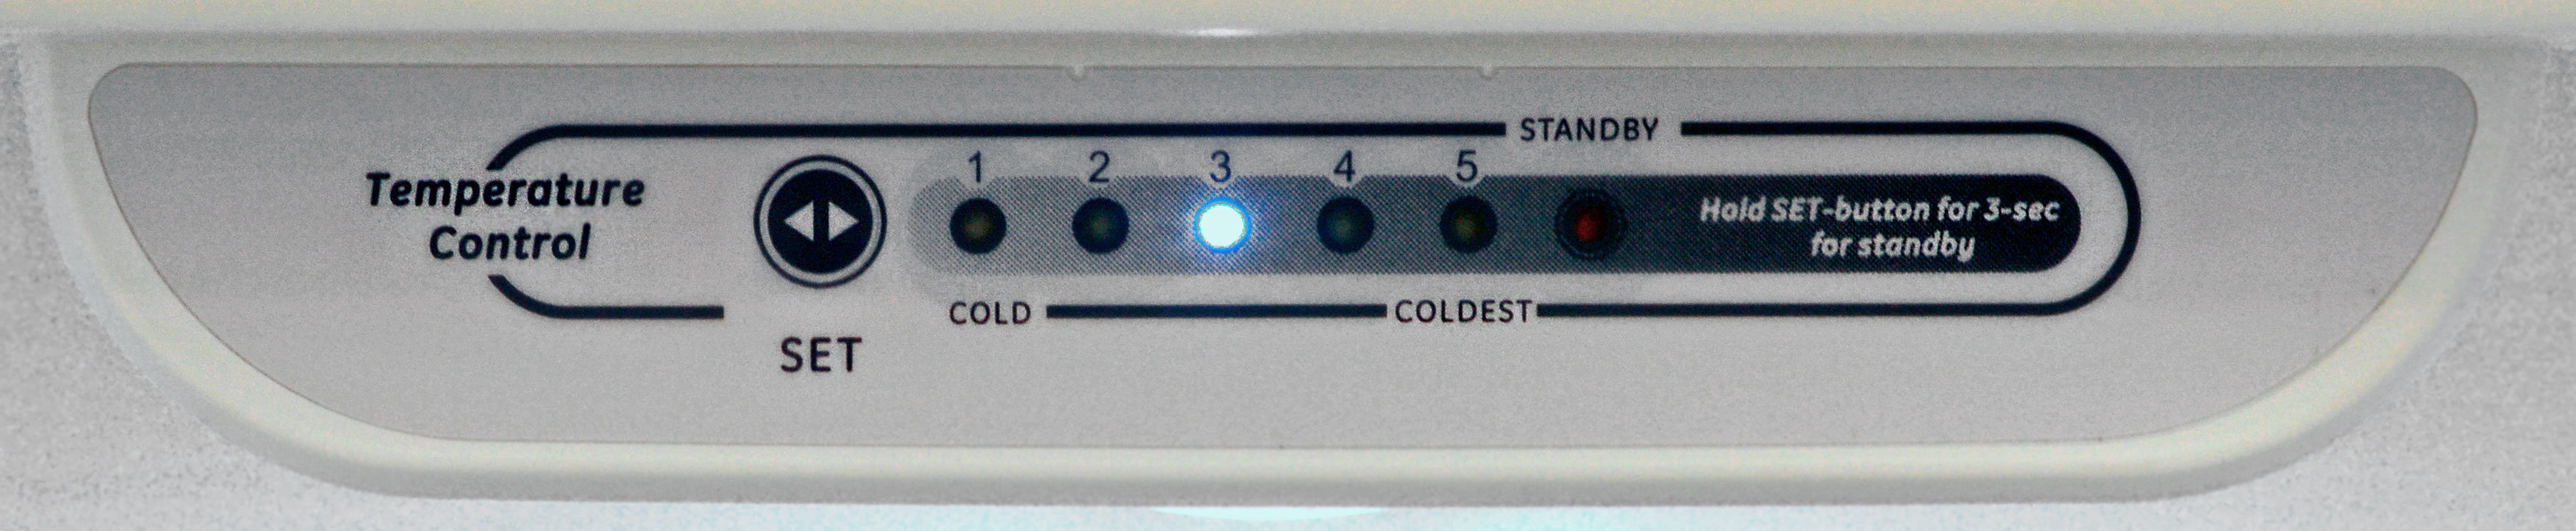 We found that the fridge runs warm, so you'll want to make sure the controls are set a little cooler than you might expect.